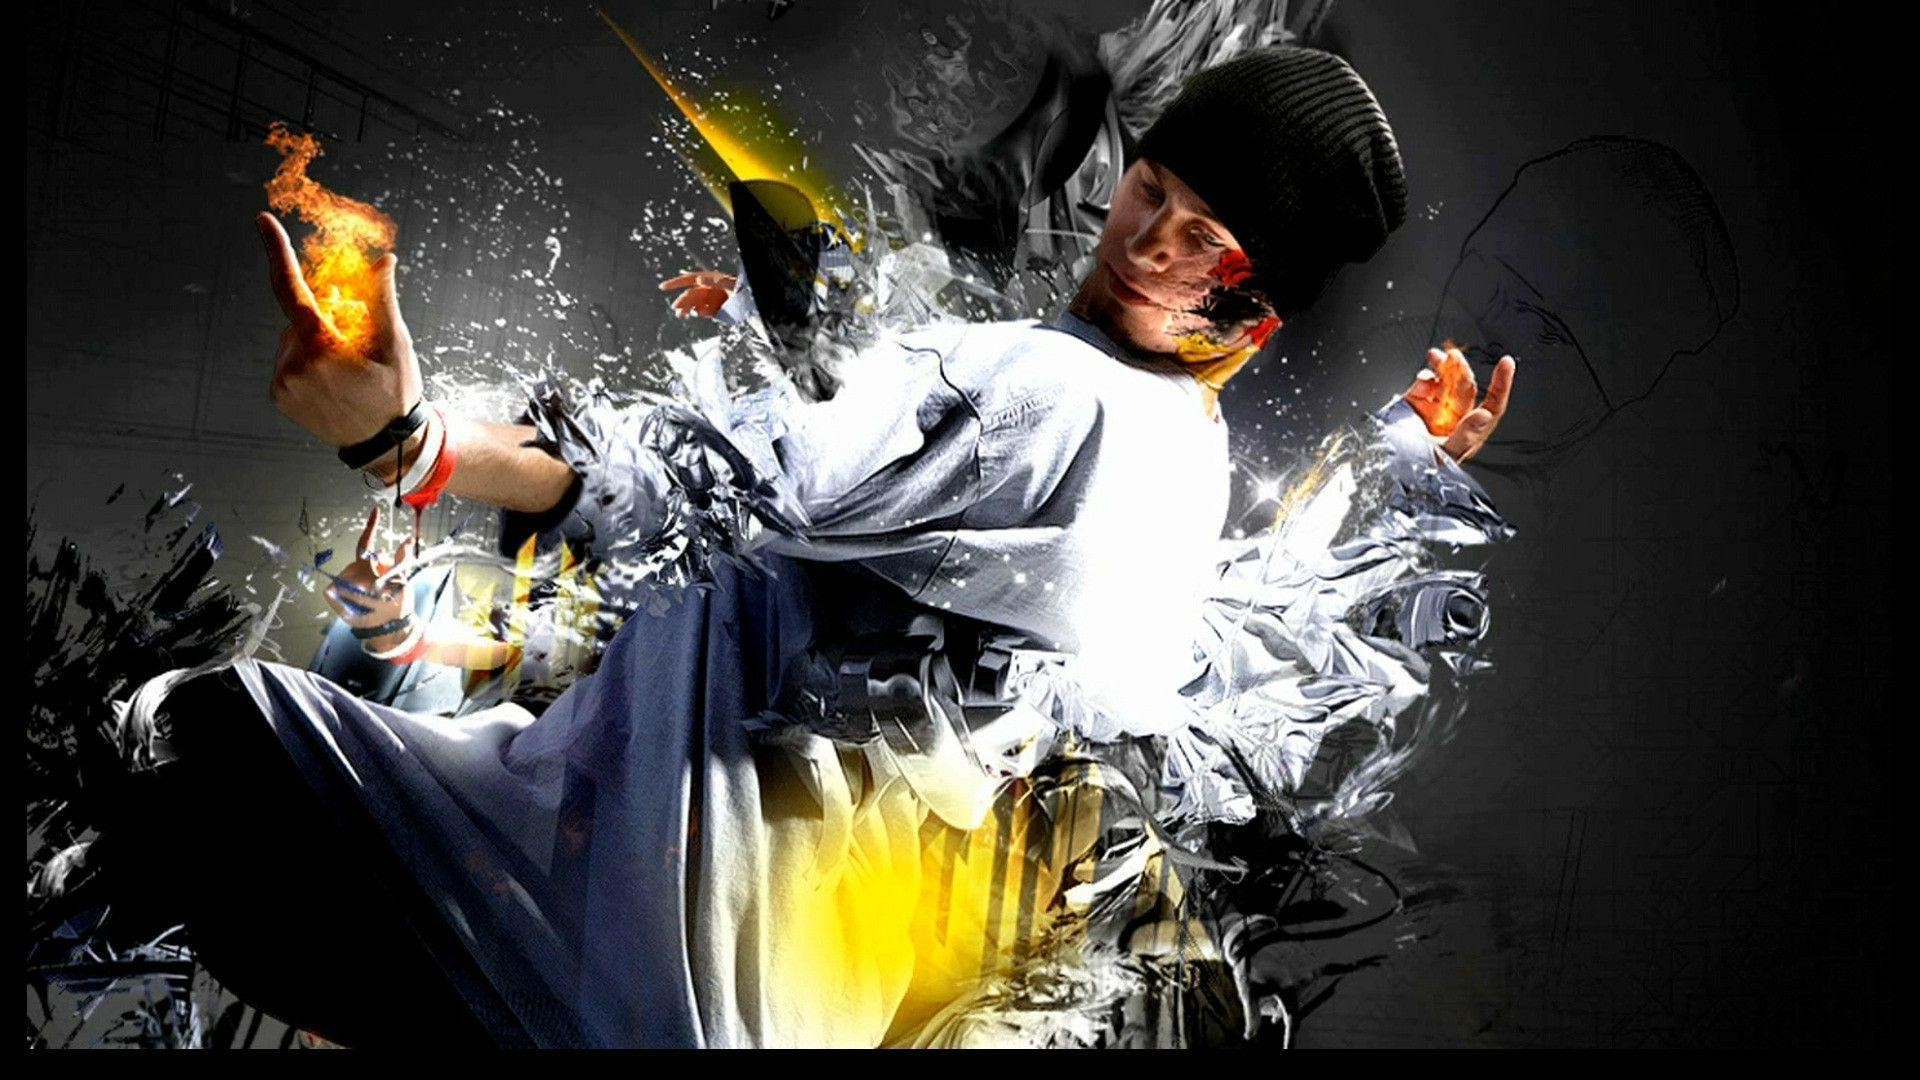 Bboy Wallpaper Full Hd Cool Wallpapers For Boys 65 Images